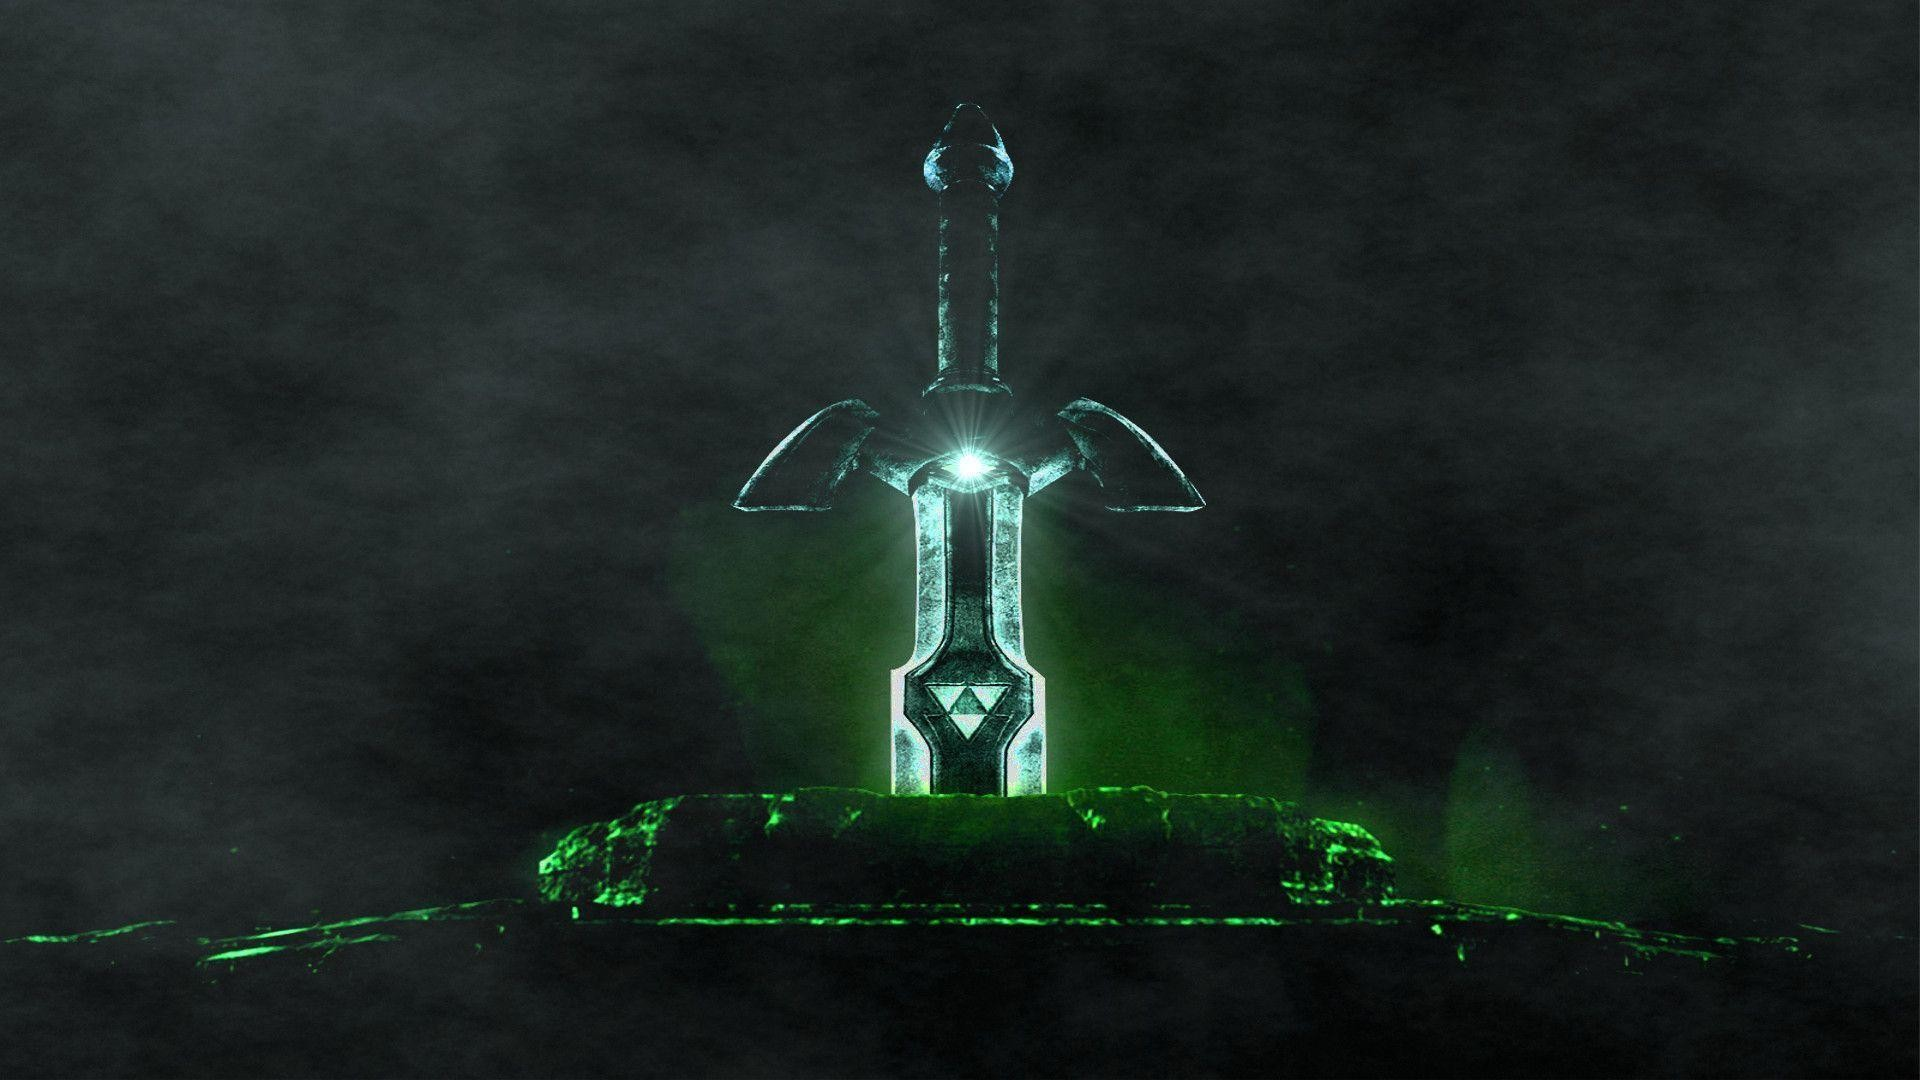 1920x1080 The legend of zelda master sword HD Wallpaper